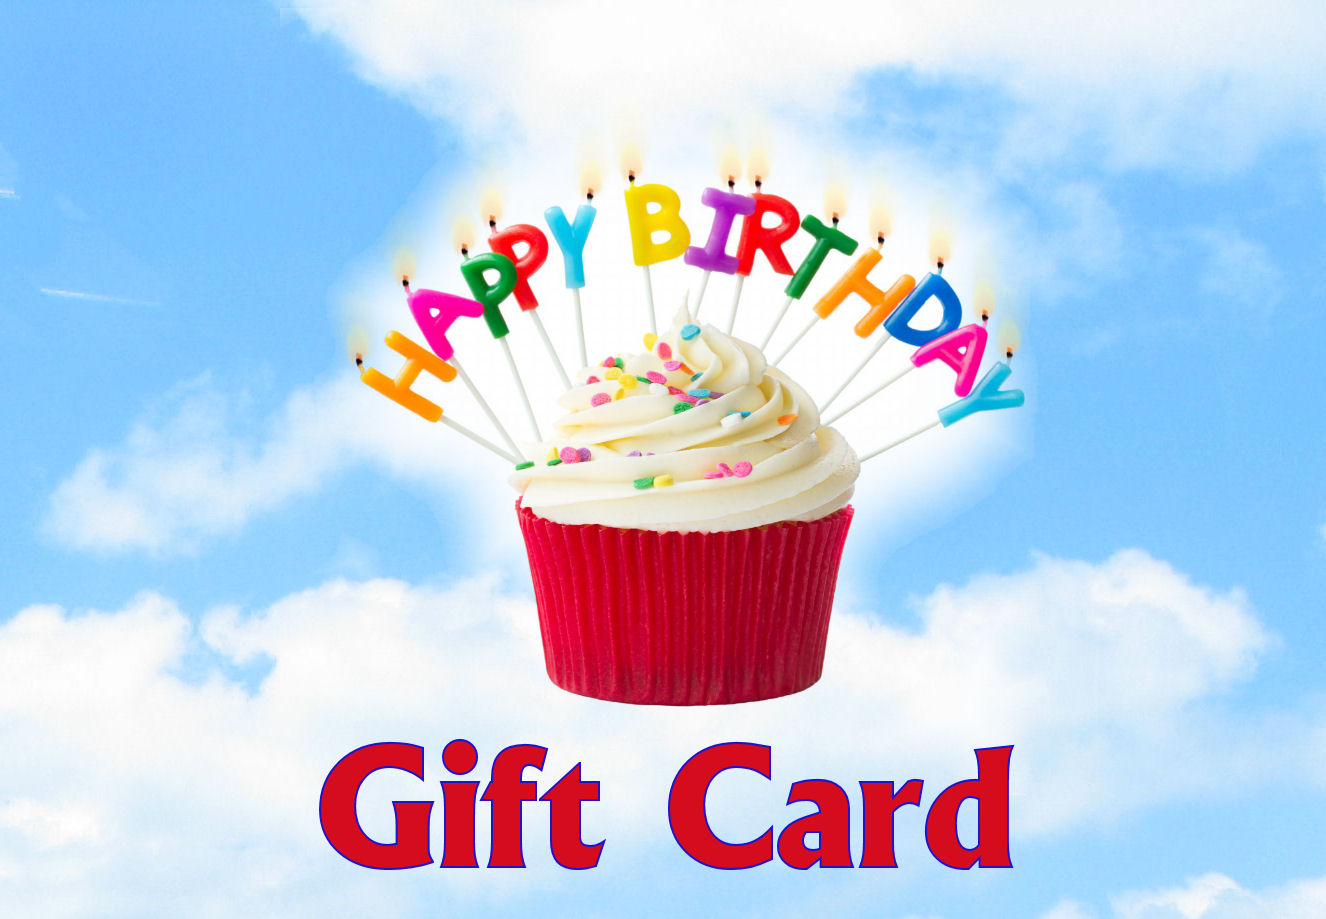 Happy Birthday Digital Gift Card